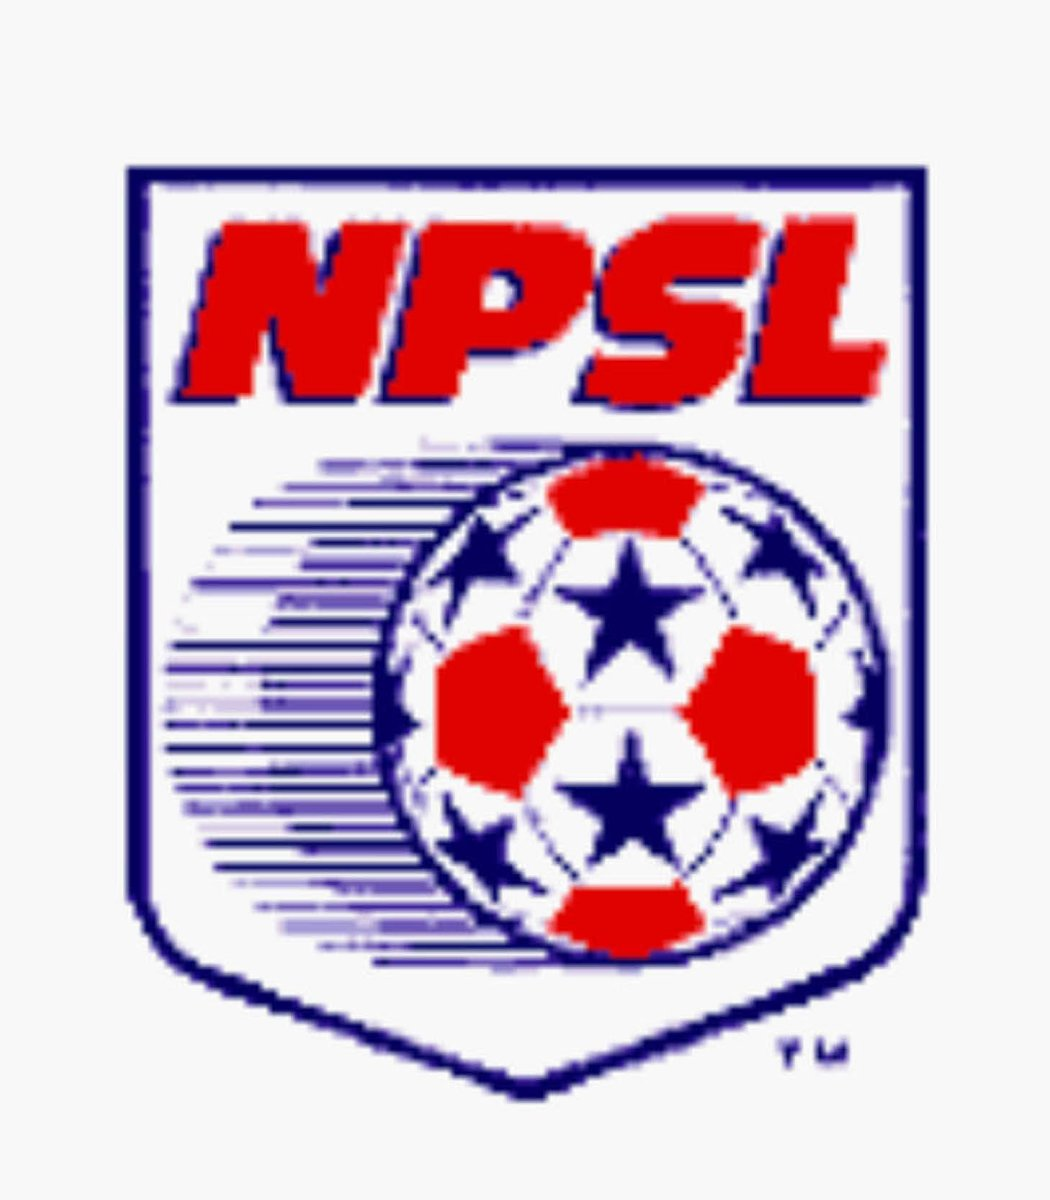 Yep. We support Mark Pulisic, @HarrisburgHeat, and the National Professional Soccer League now.